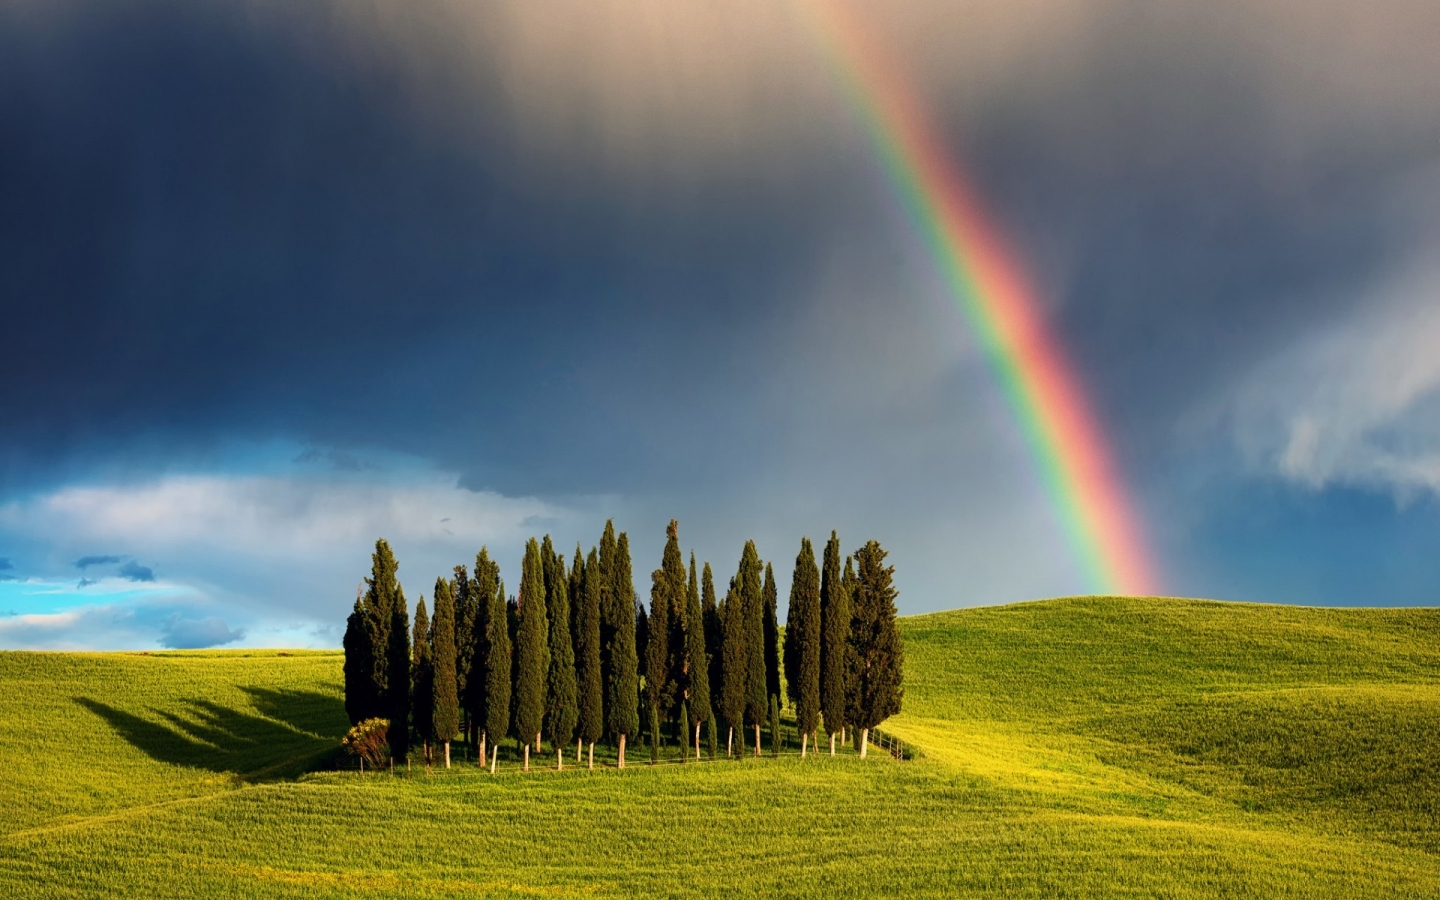 Rainbow in Tuscany for 1440 x 900 widescreen resolution